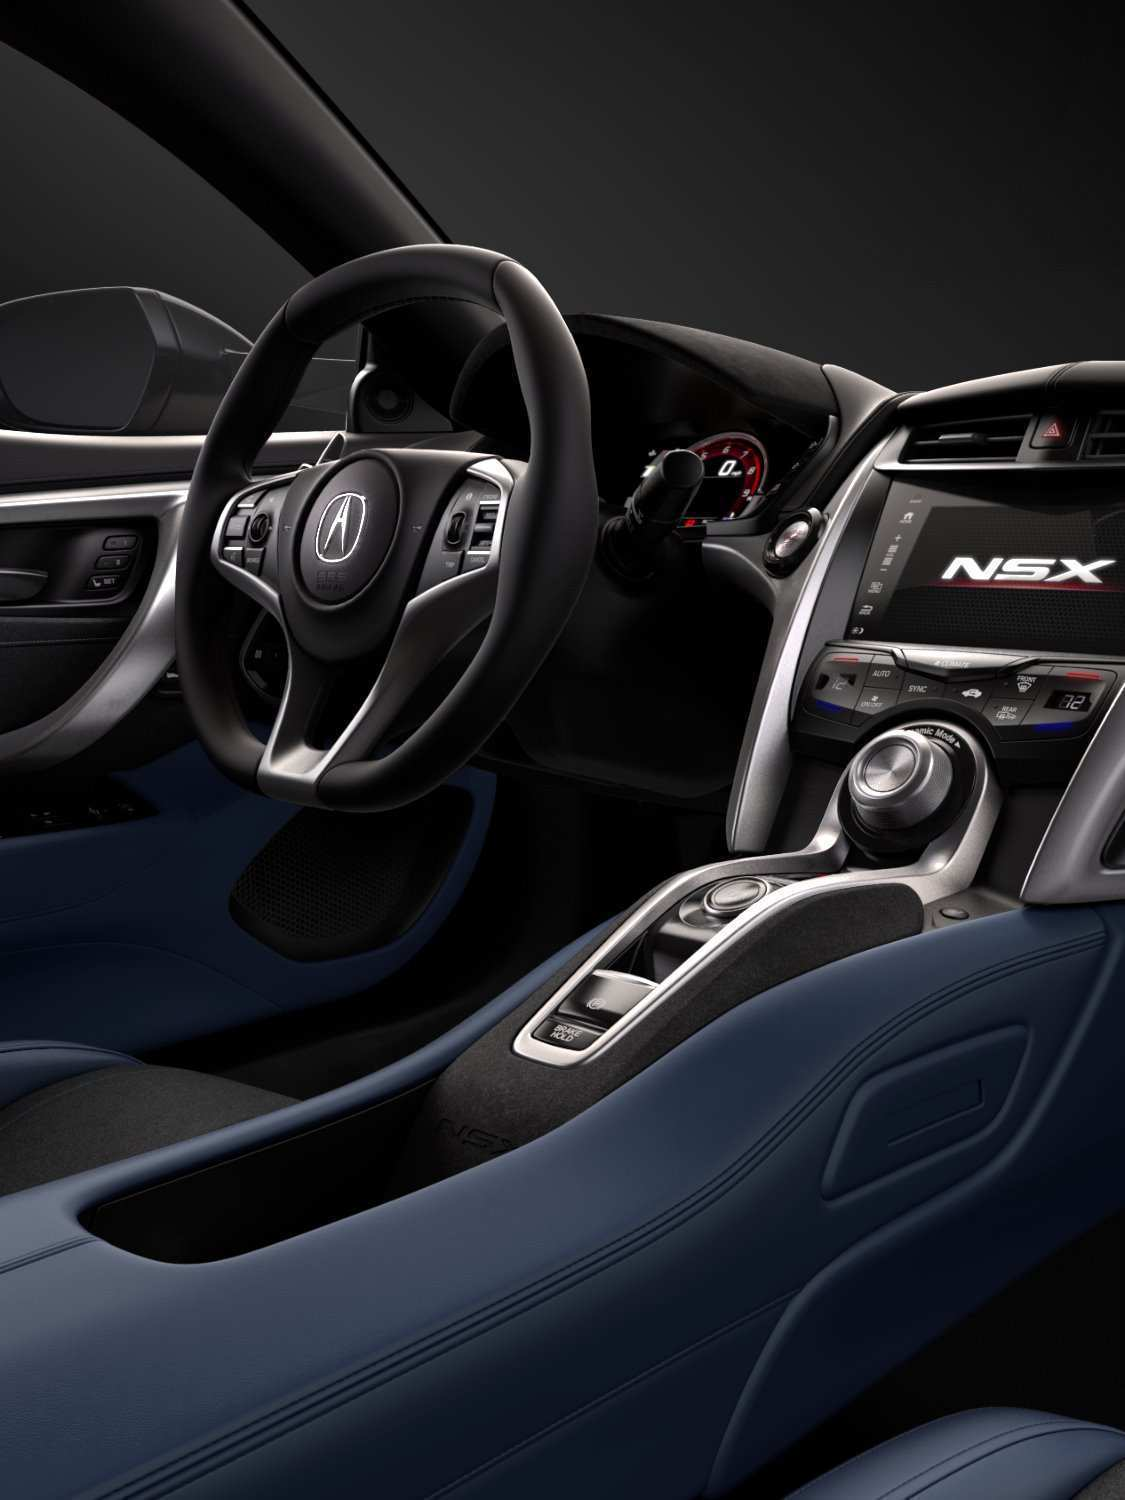 18 Gallery of 2019 Acura Nsx Horsepower Interior by 2019 Acura Nsx Horsepower